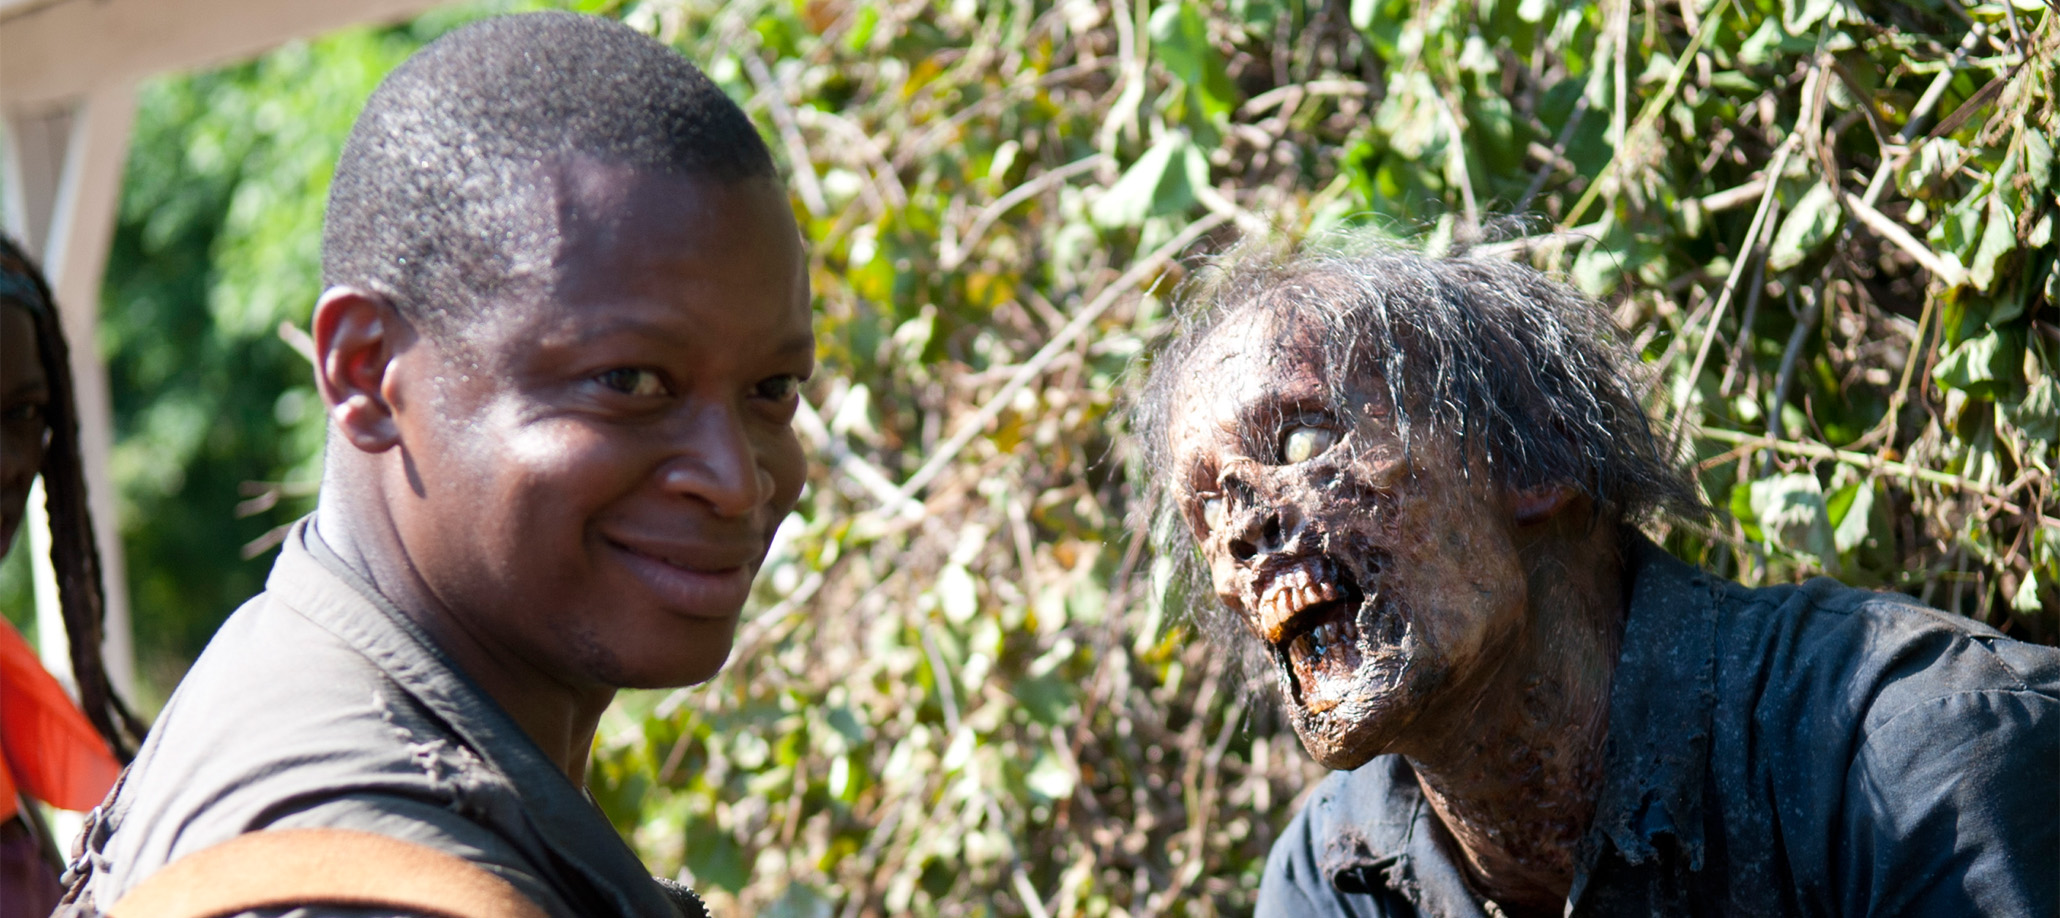 Bastidores da 4ª temporada de The Walking Dead: Episódio S04E04 -